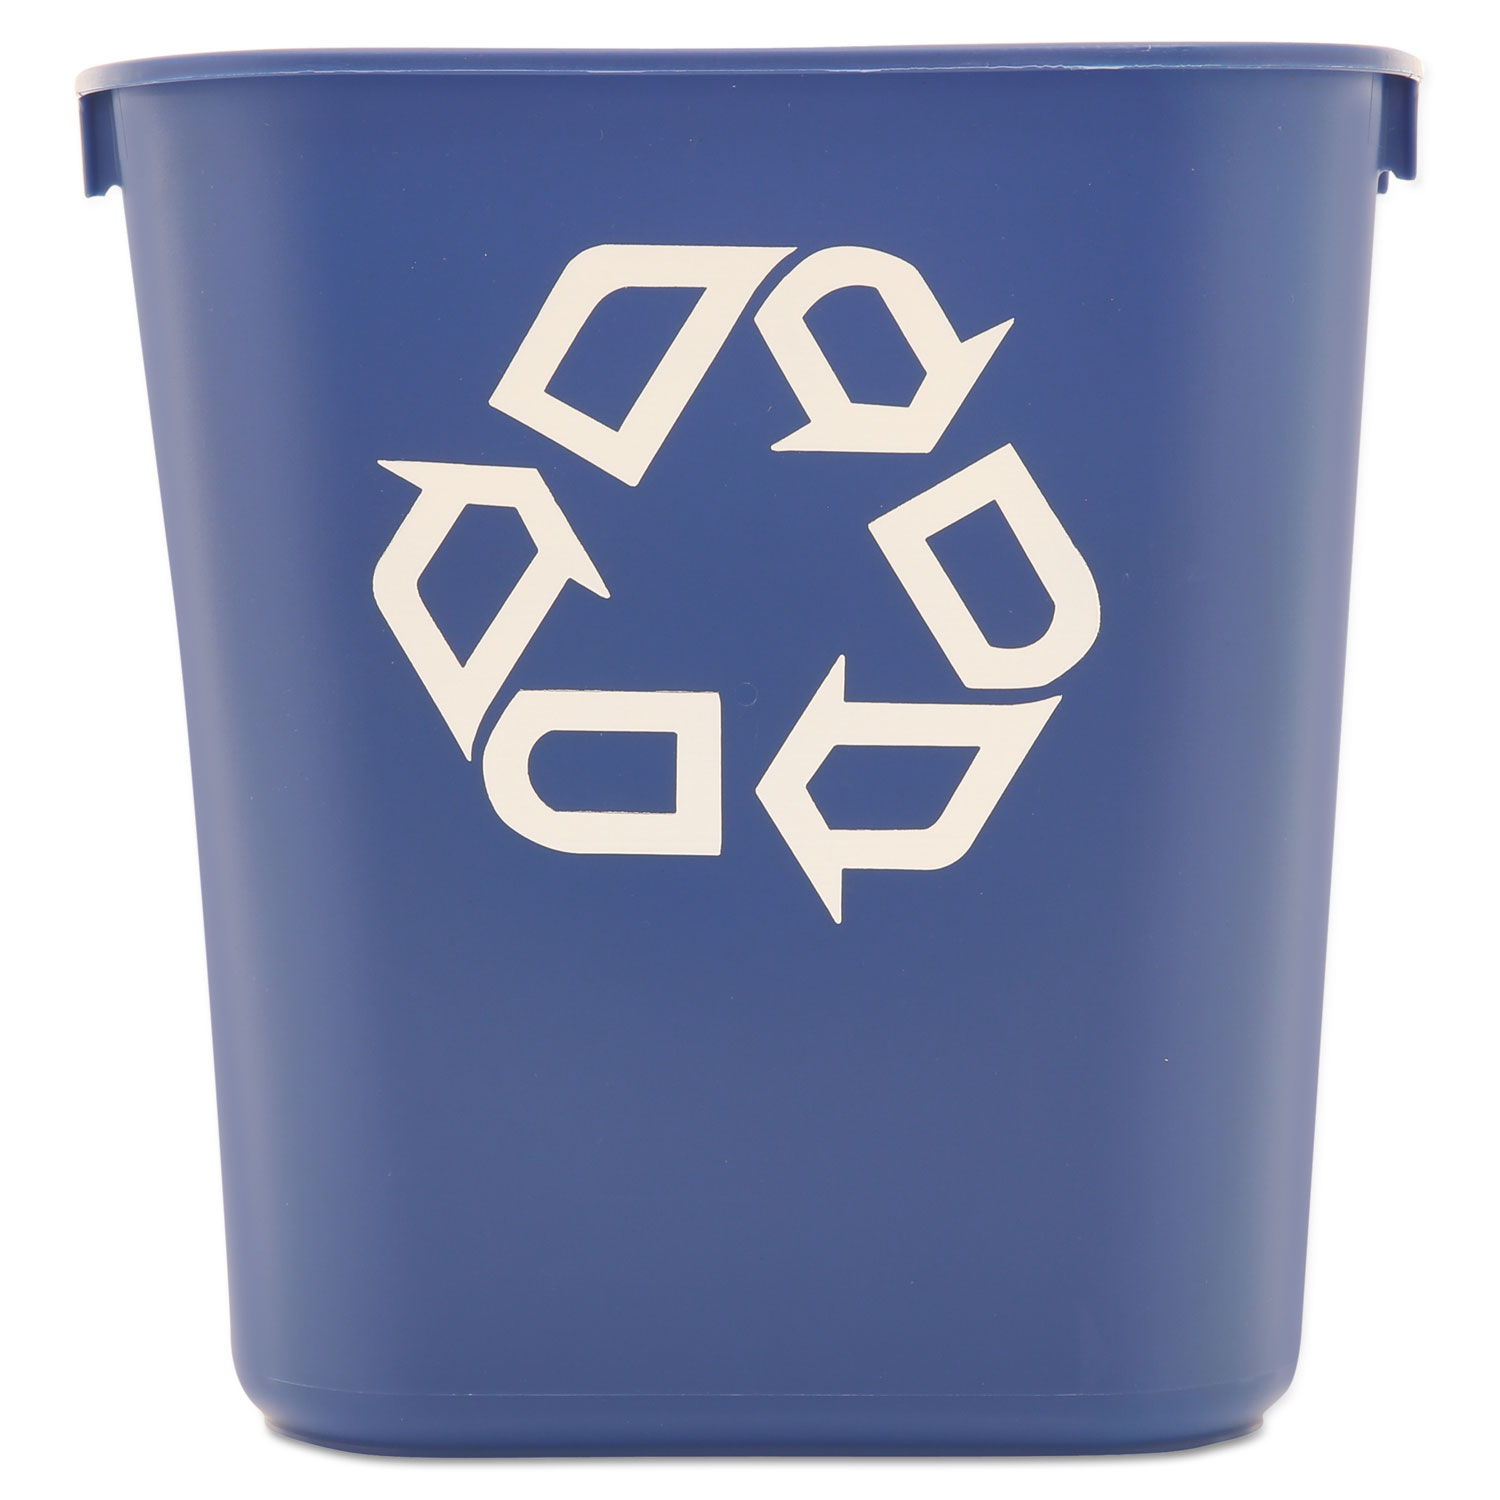 Small Deskside Recycling Container, Rectangular, Plastic, 13.63 qt, Blue